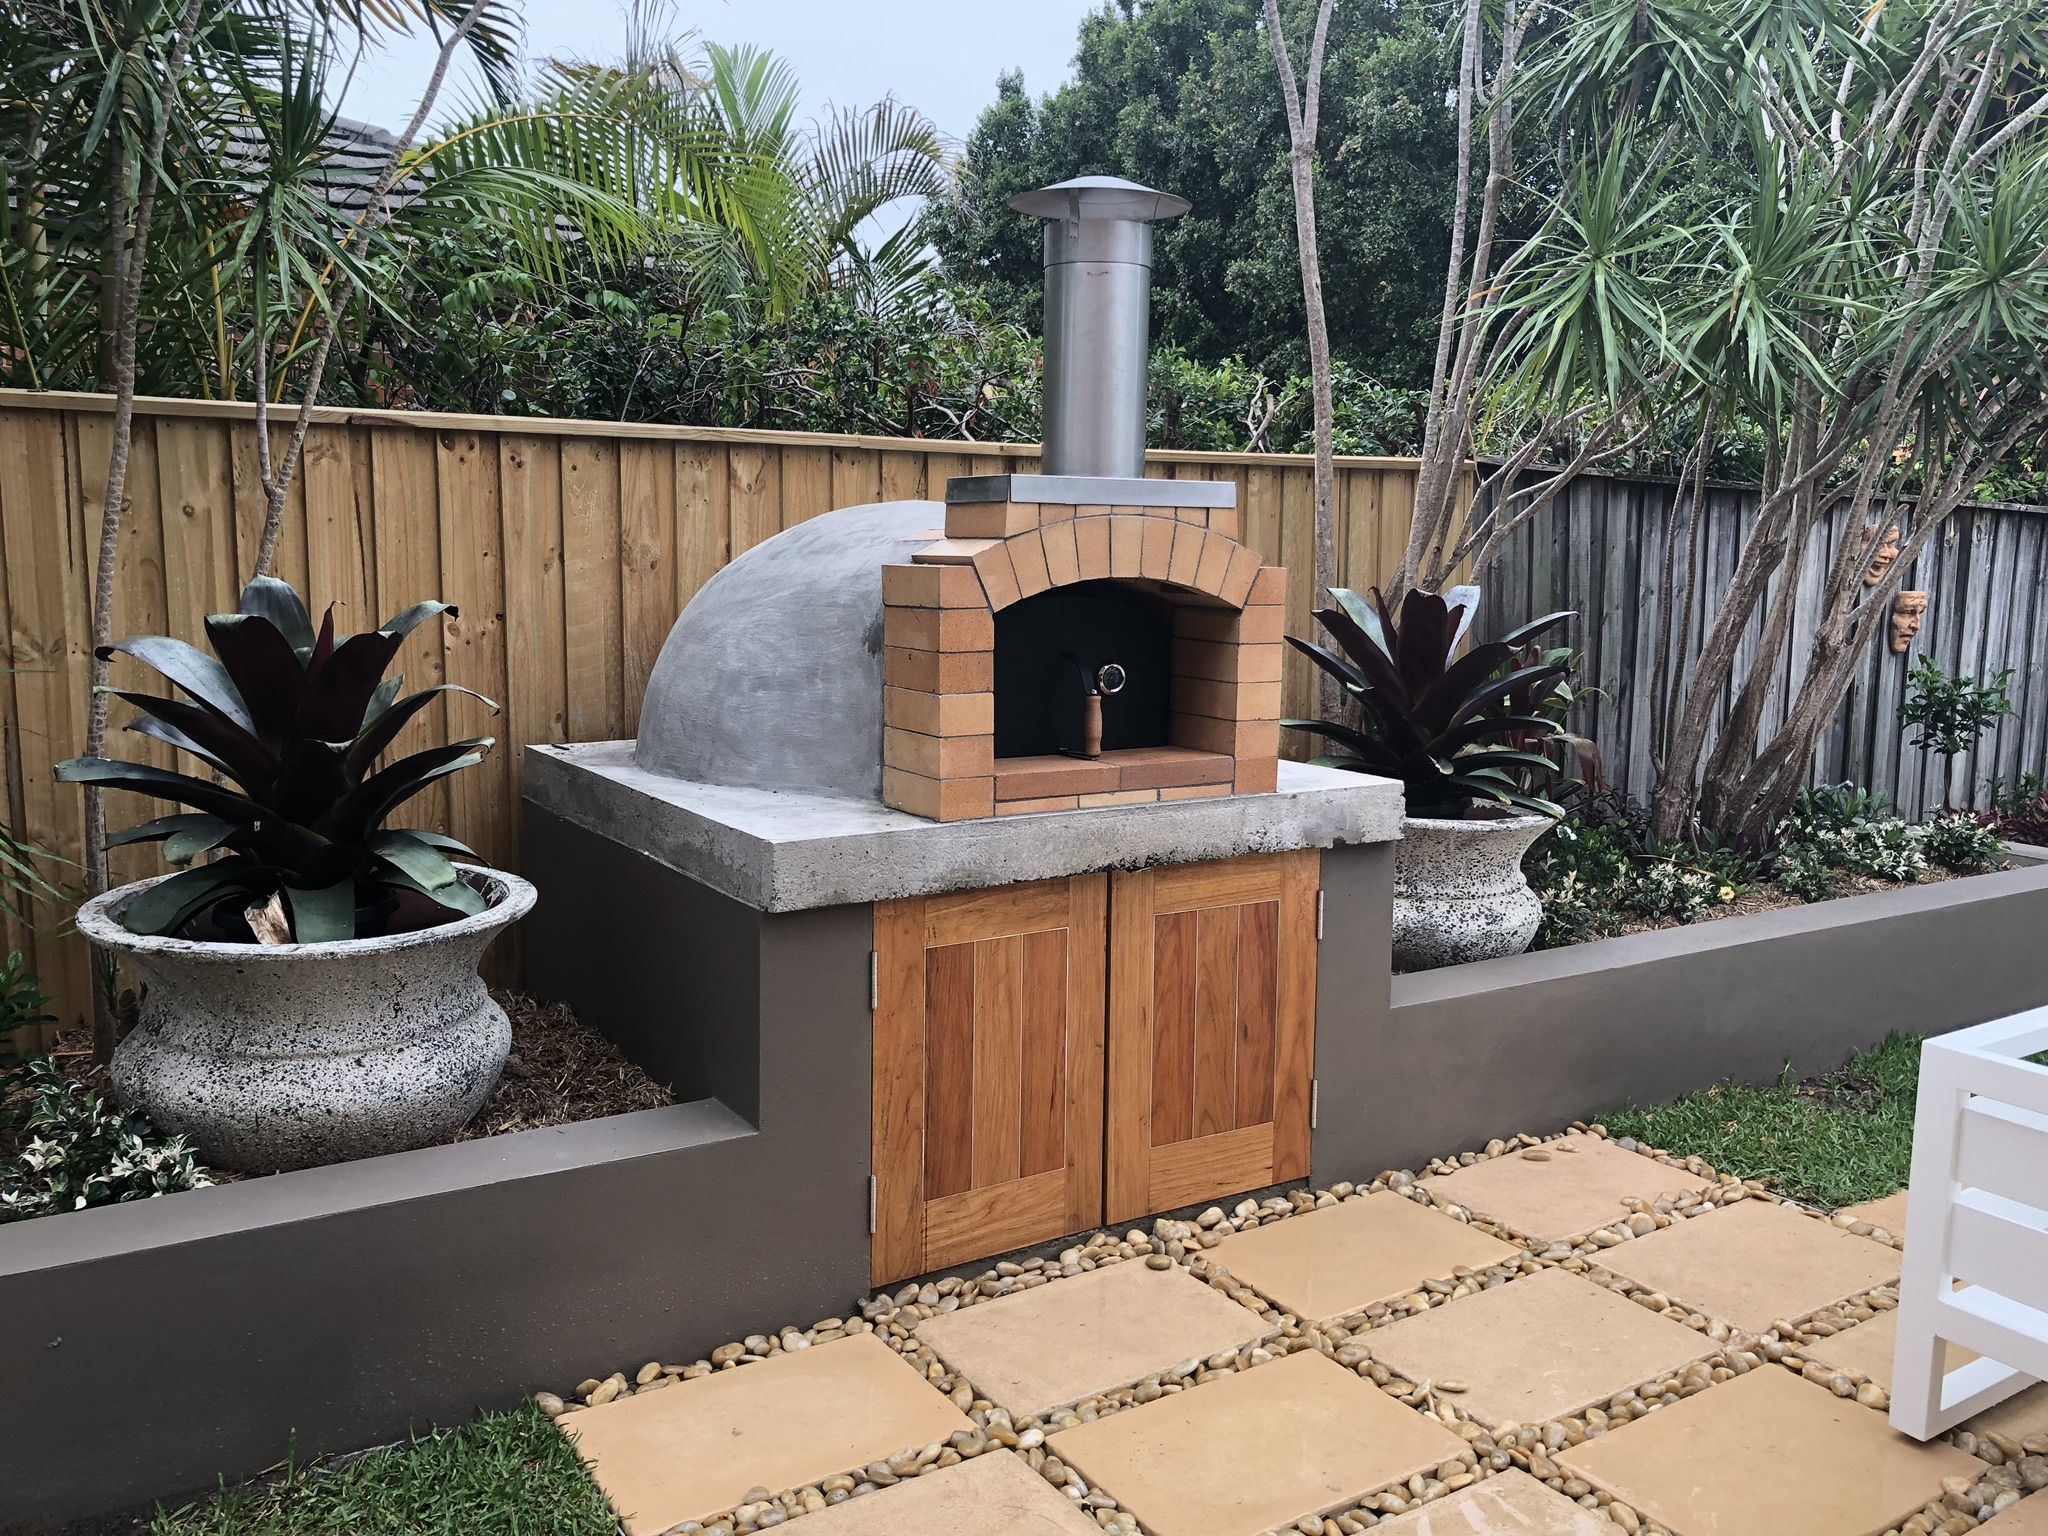 Volta alfresco woodfired pizza oven DIY kit Woodfired